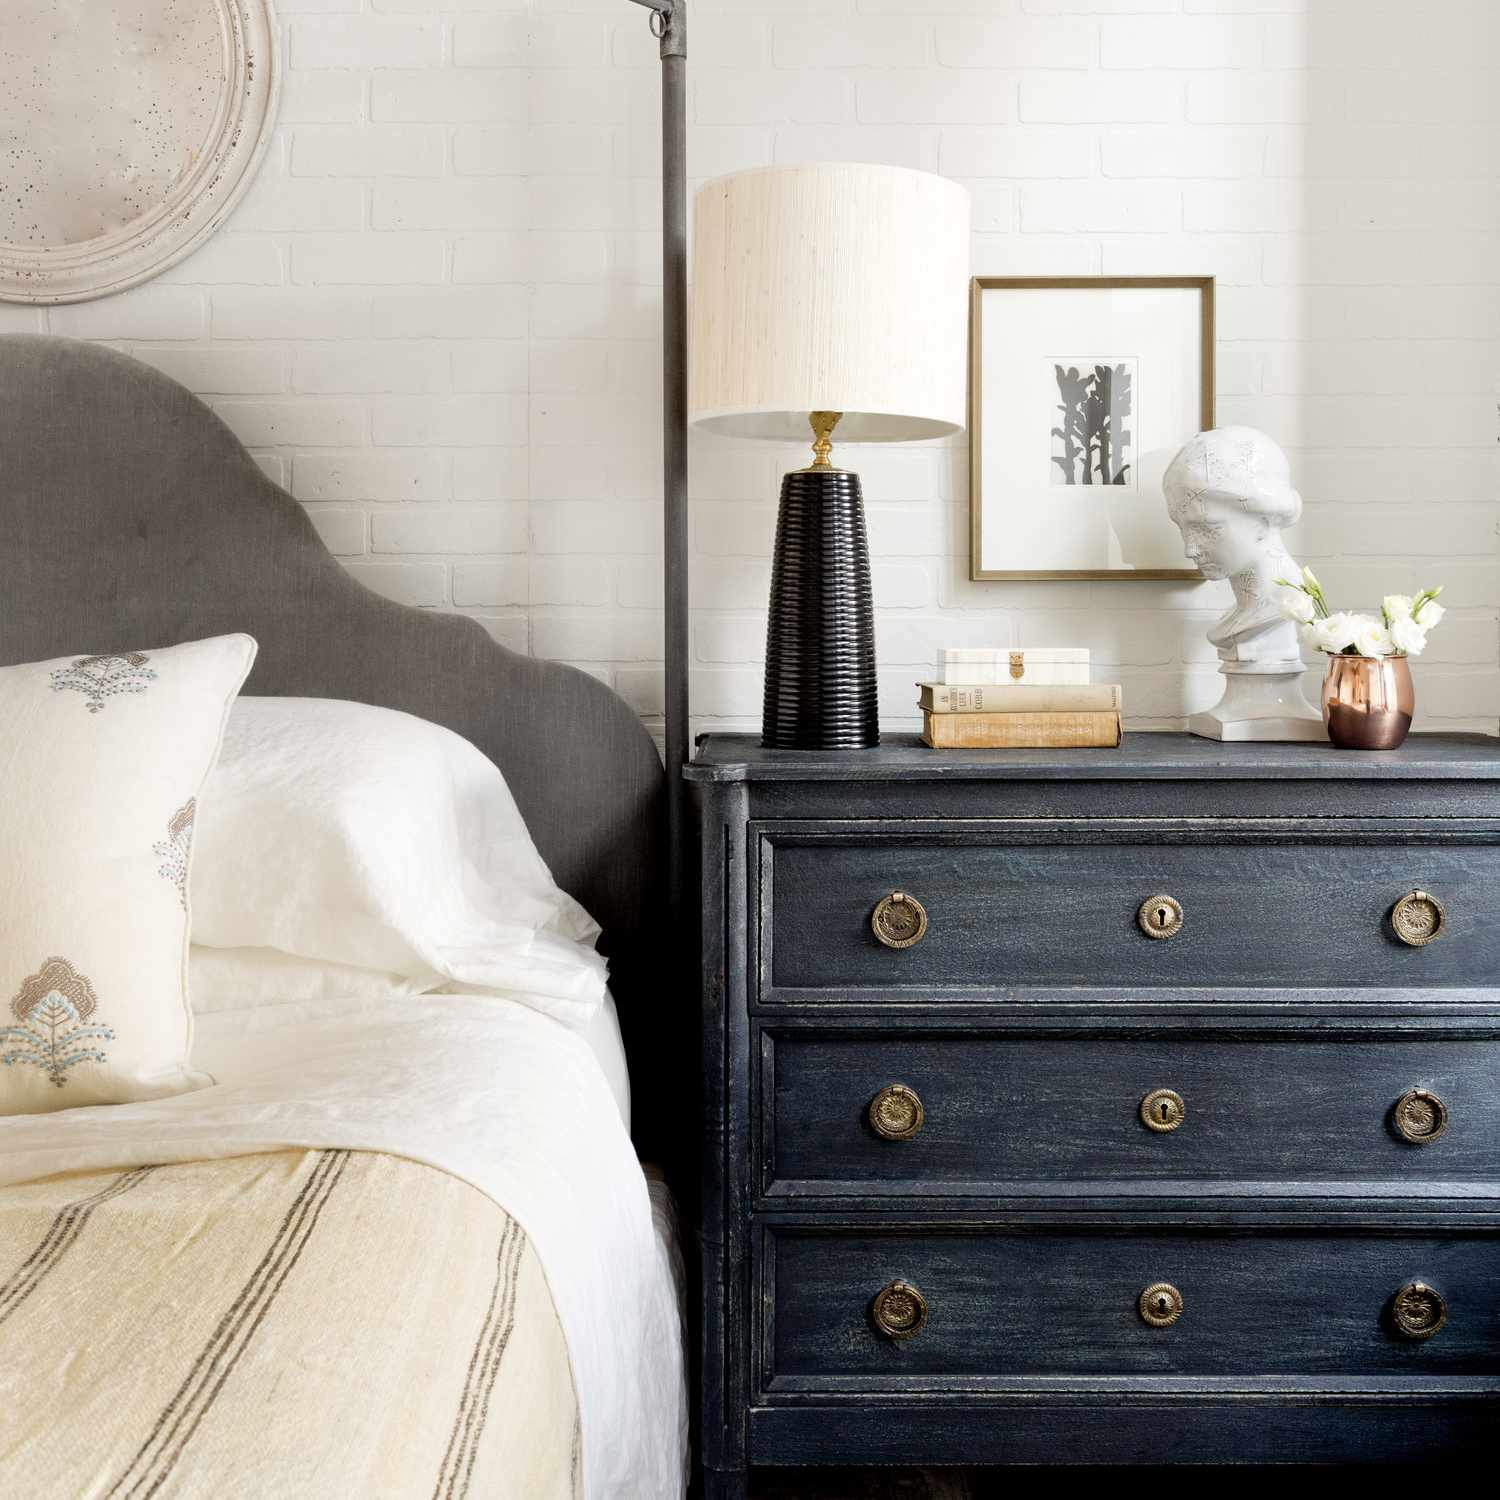 A bedroom with a canopy bed and an antique dresser as a nightstand